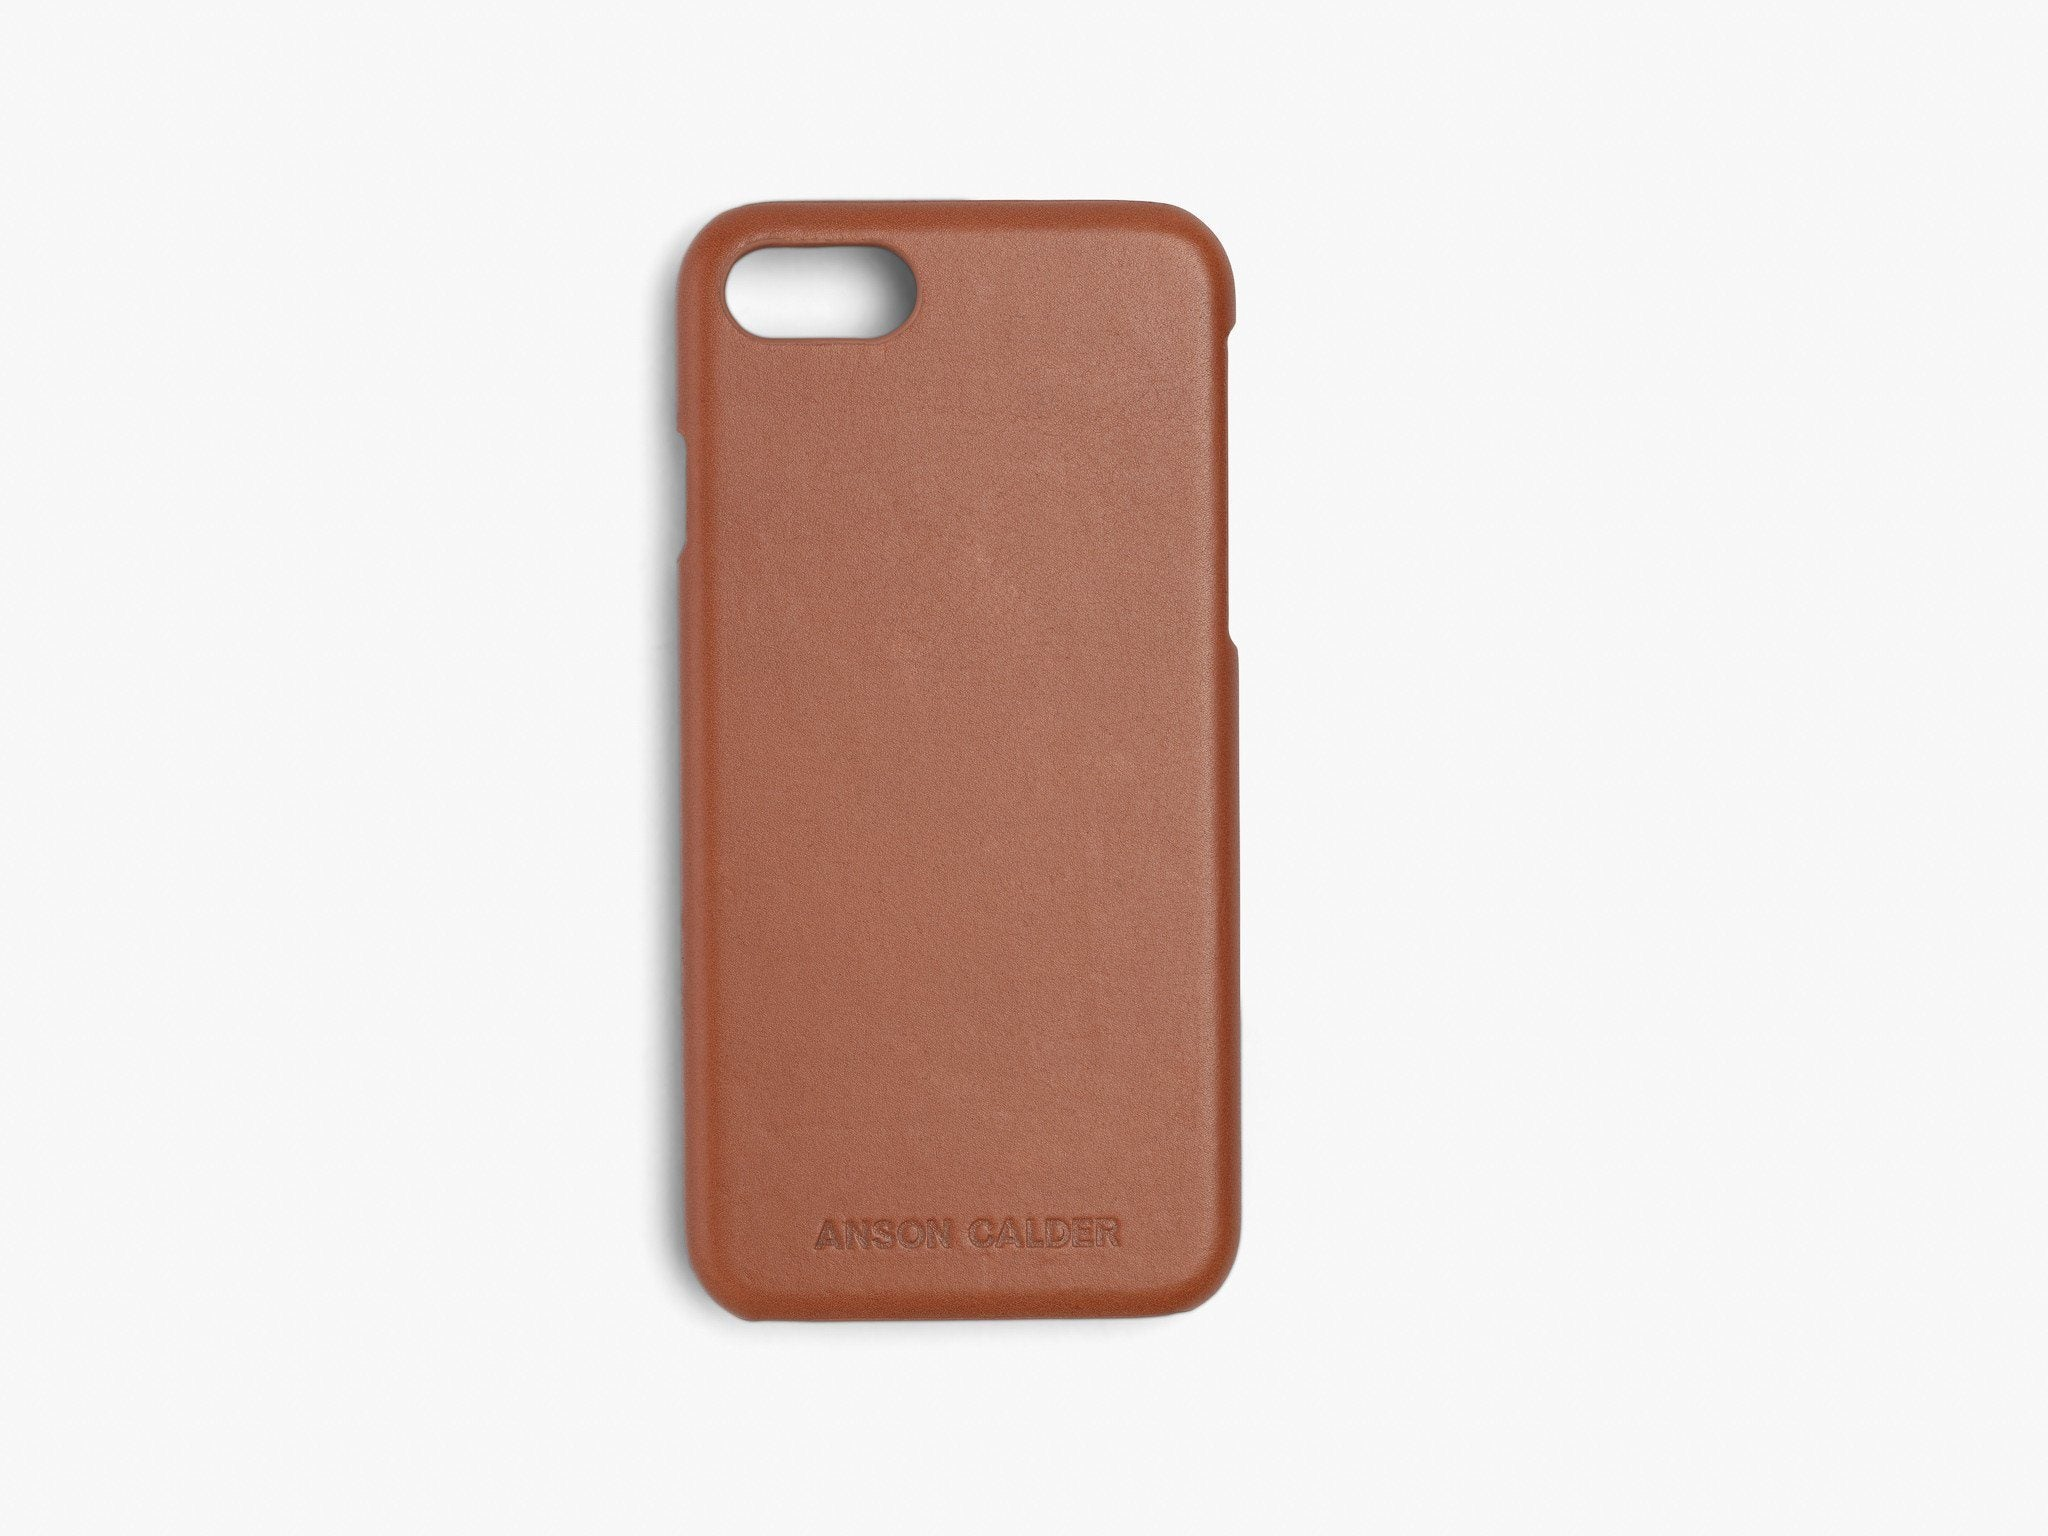 CALFSKIN iPHONE CASE CASES ANSON CALDER iPhone 6 / 6S !iphone8 _Cognac